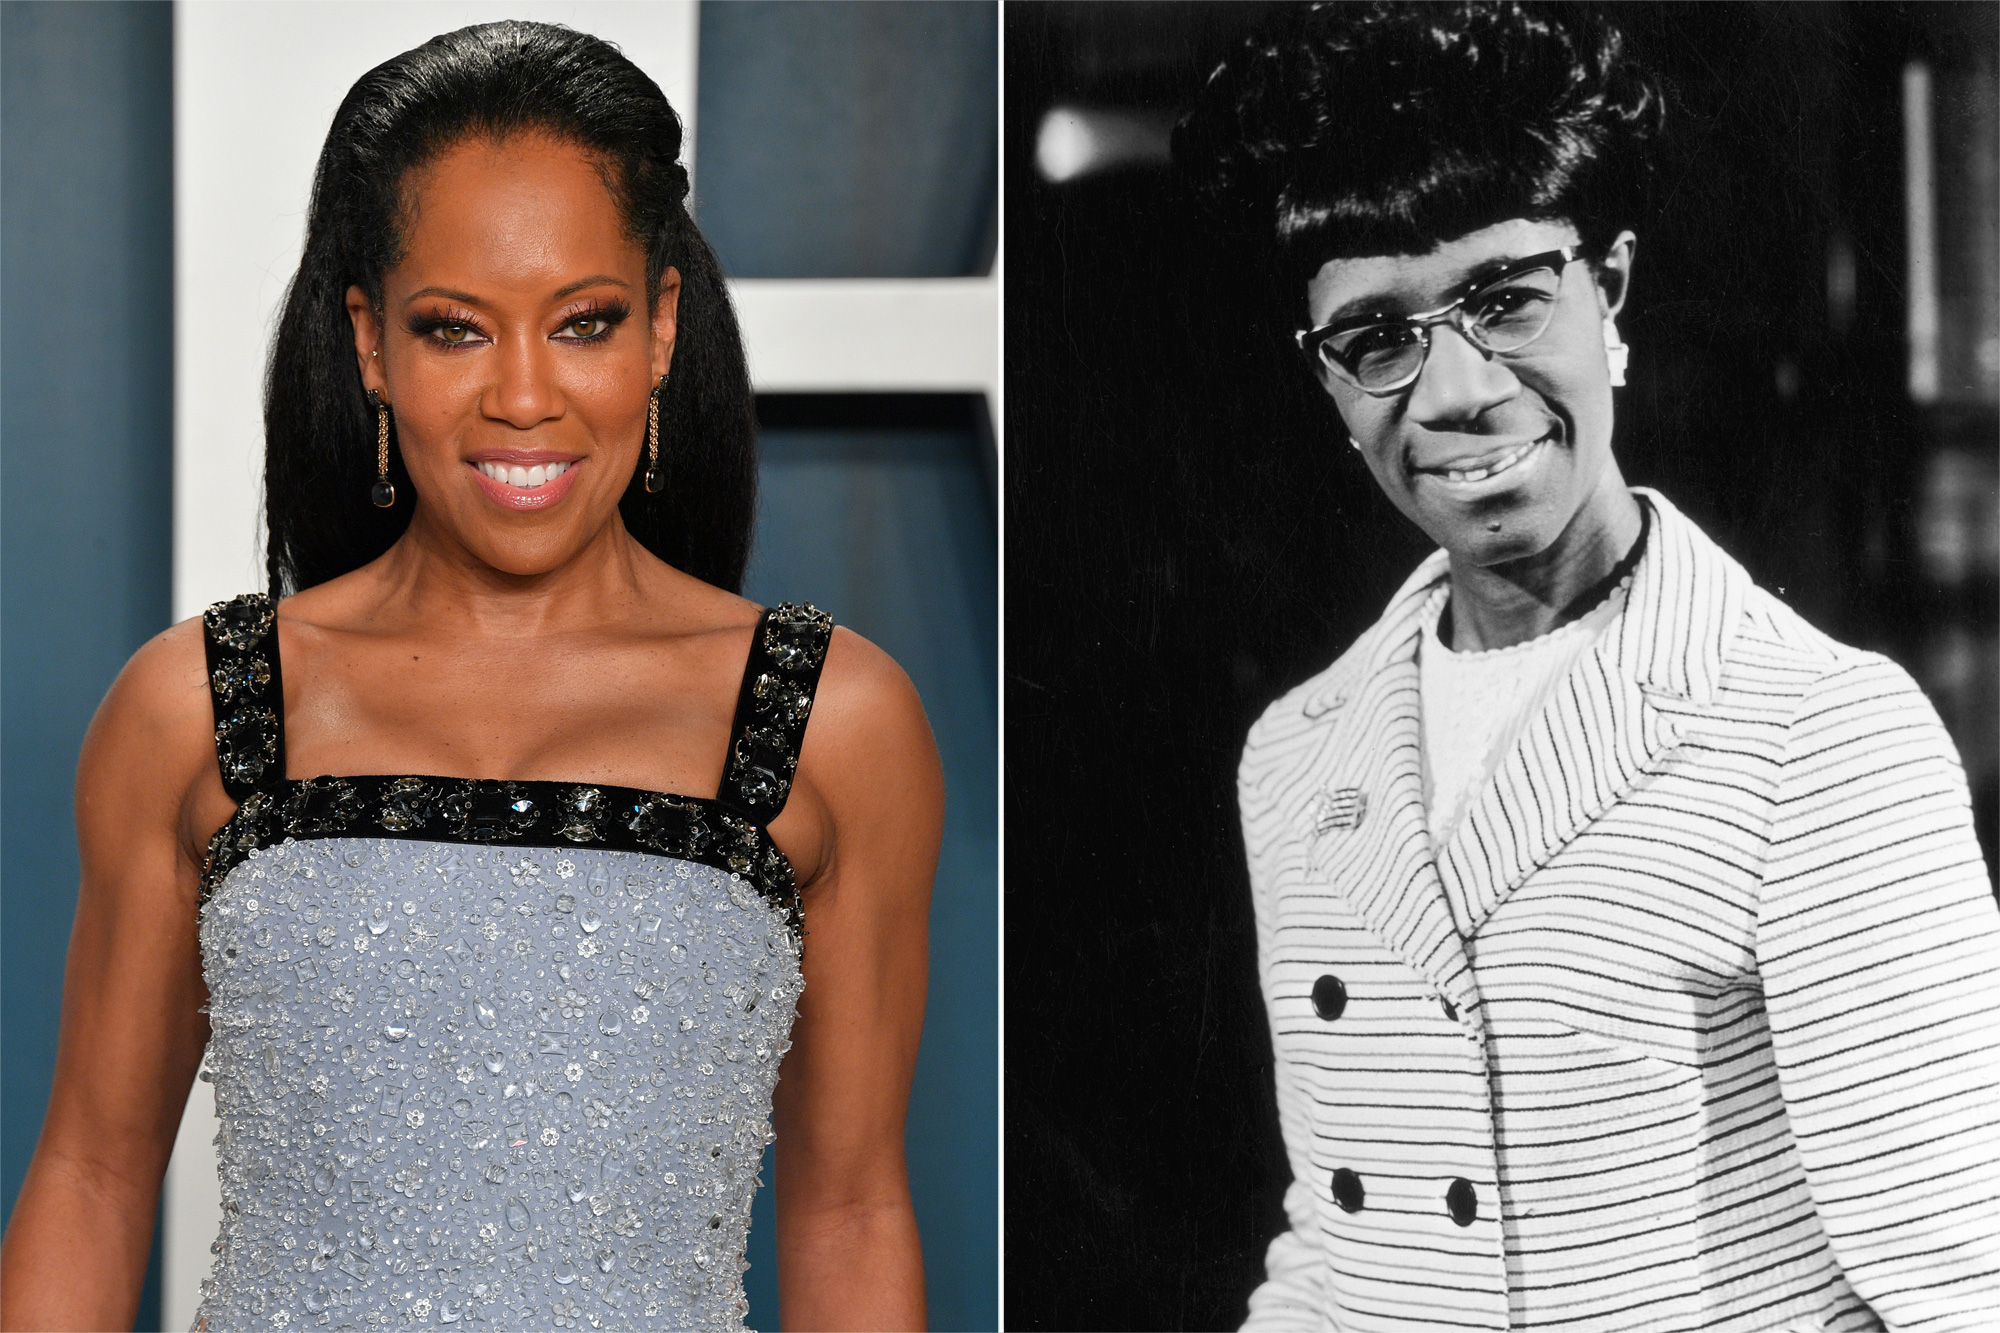 Regina King to star in, produce biopic on first Black US congresswoman Shirley Chisholm